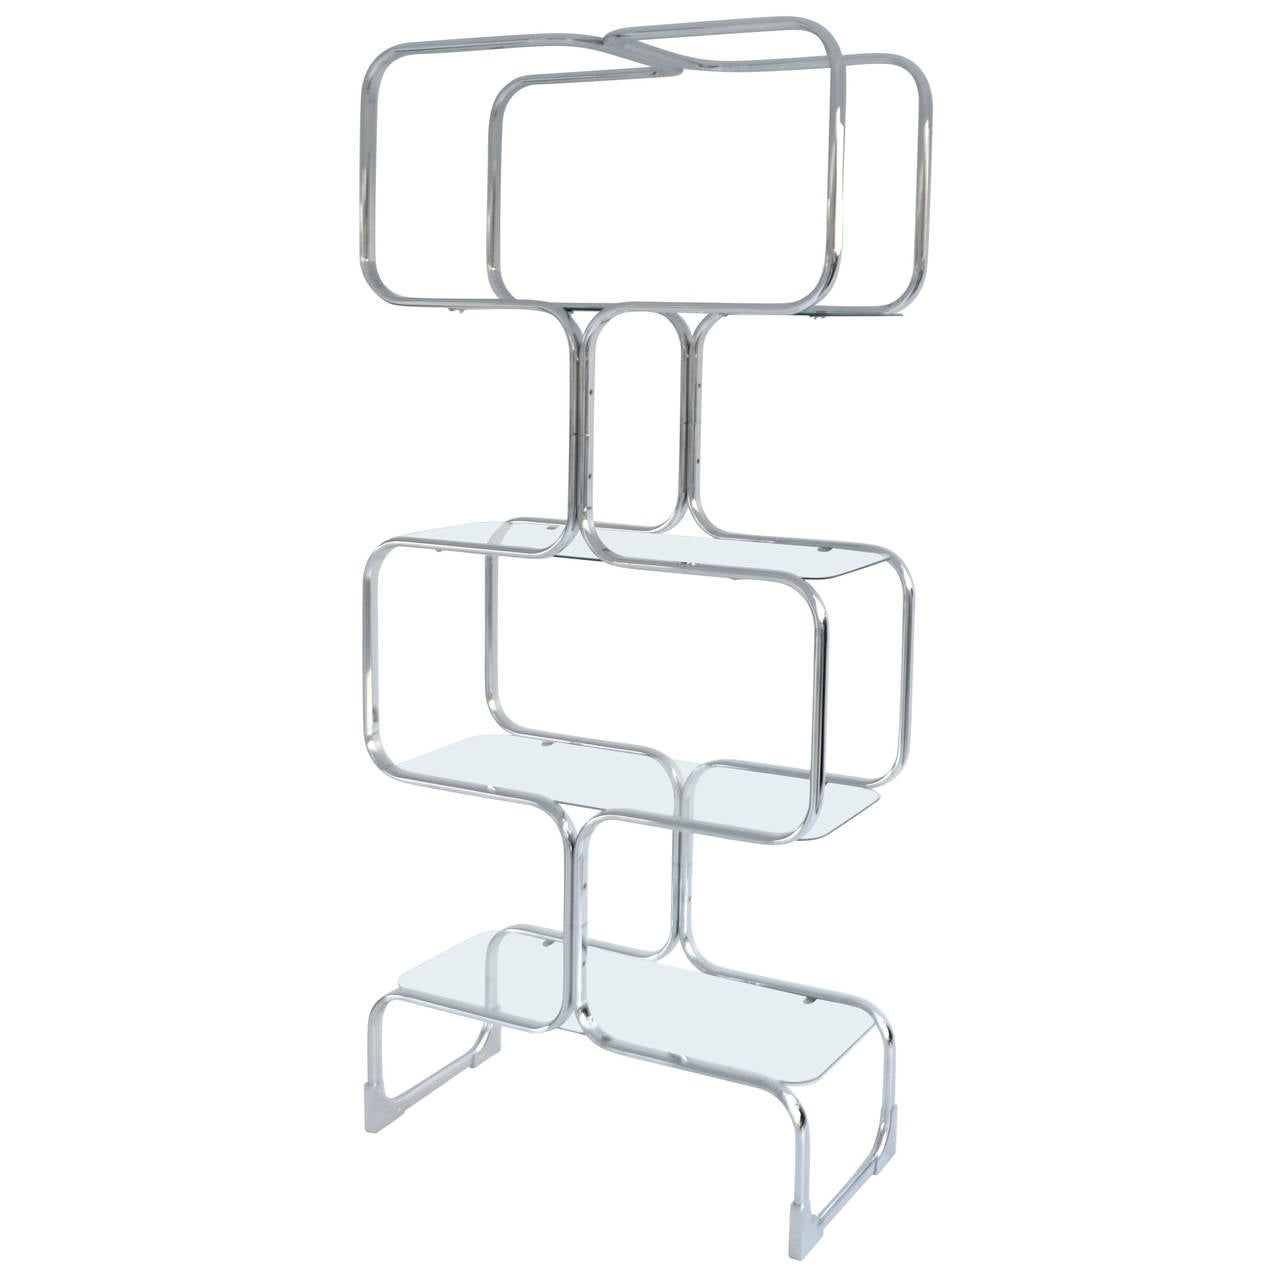 italian chrome and glass postmodern etagere at stdibs - italian chrome and glass postmodern etagere